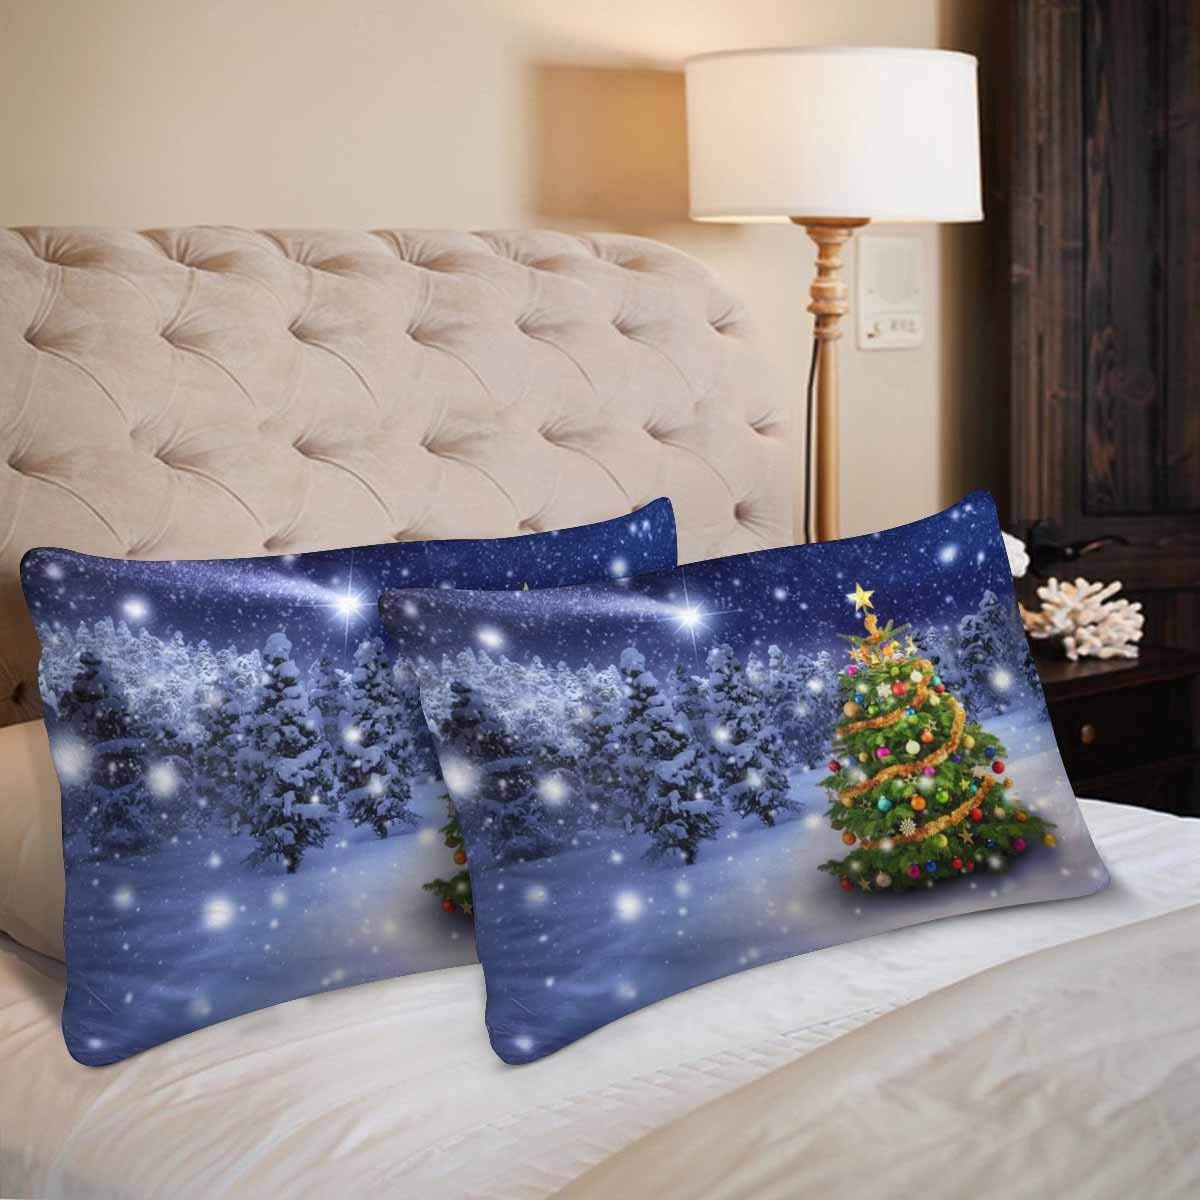 GCKG Christmas Tree Snowy Night Star Christmas Pillow Cases Pillowcase 20x30 inches Set of 2 - image 1 de 4